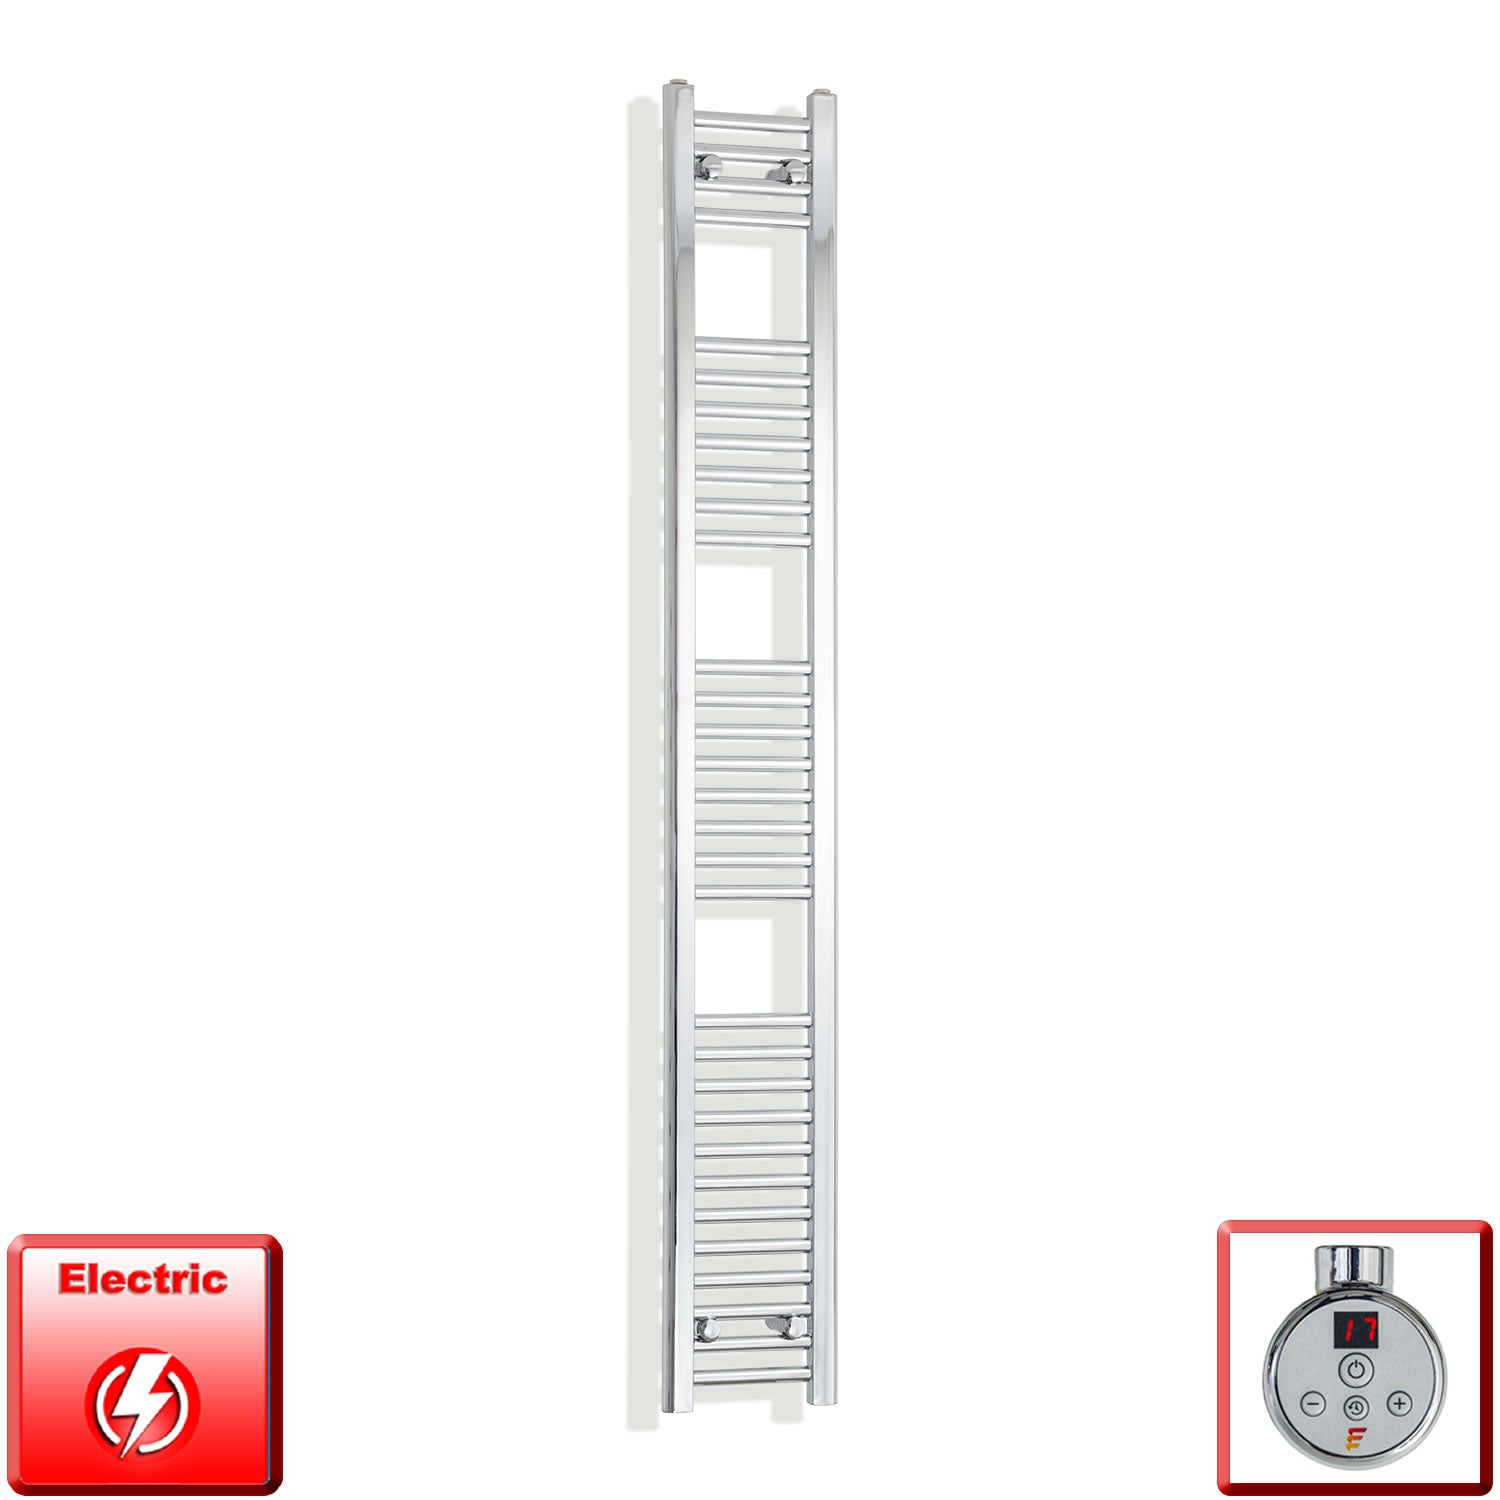 200mm Wide 1800mm High Flat Chrome Pre-Filled Electric Heated Towel Rail Radiator HTR,DGT Thermostatic